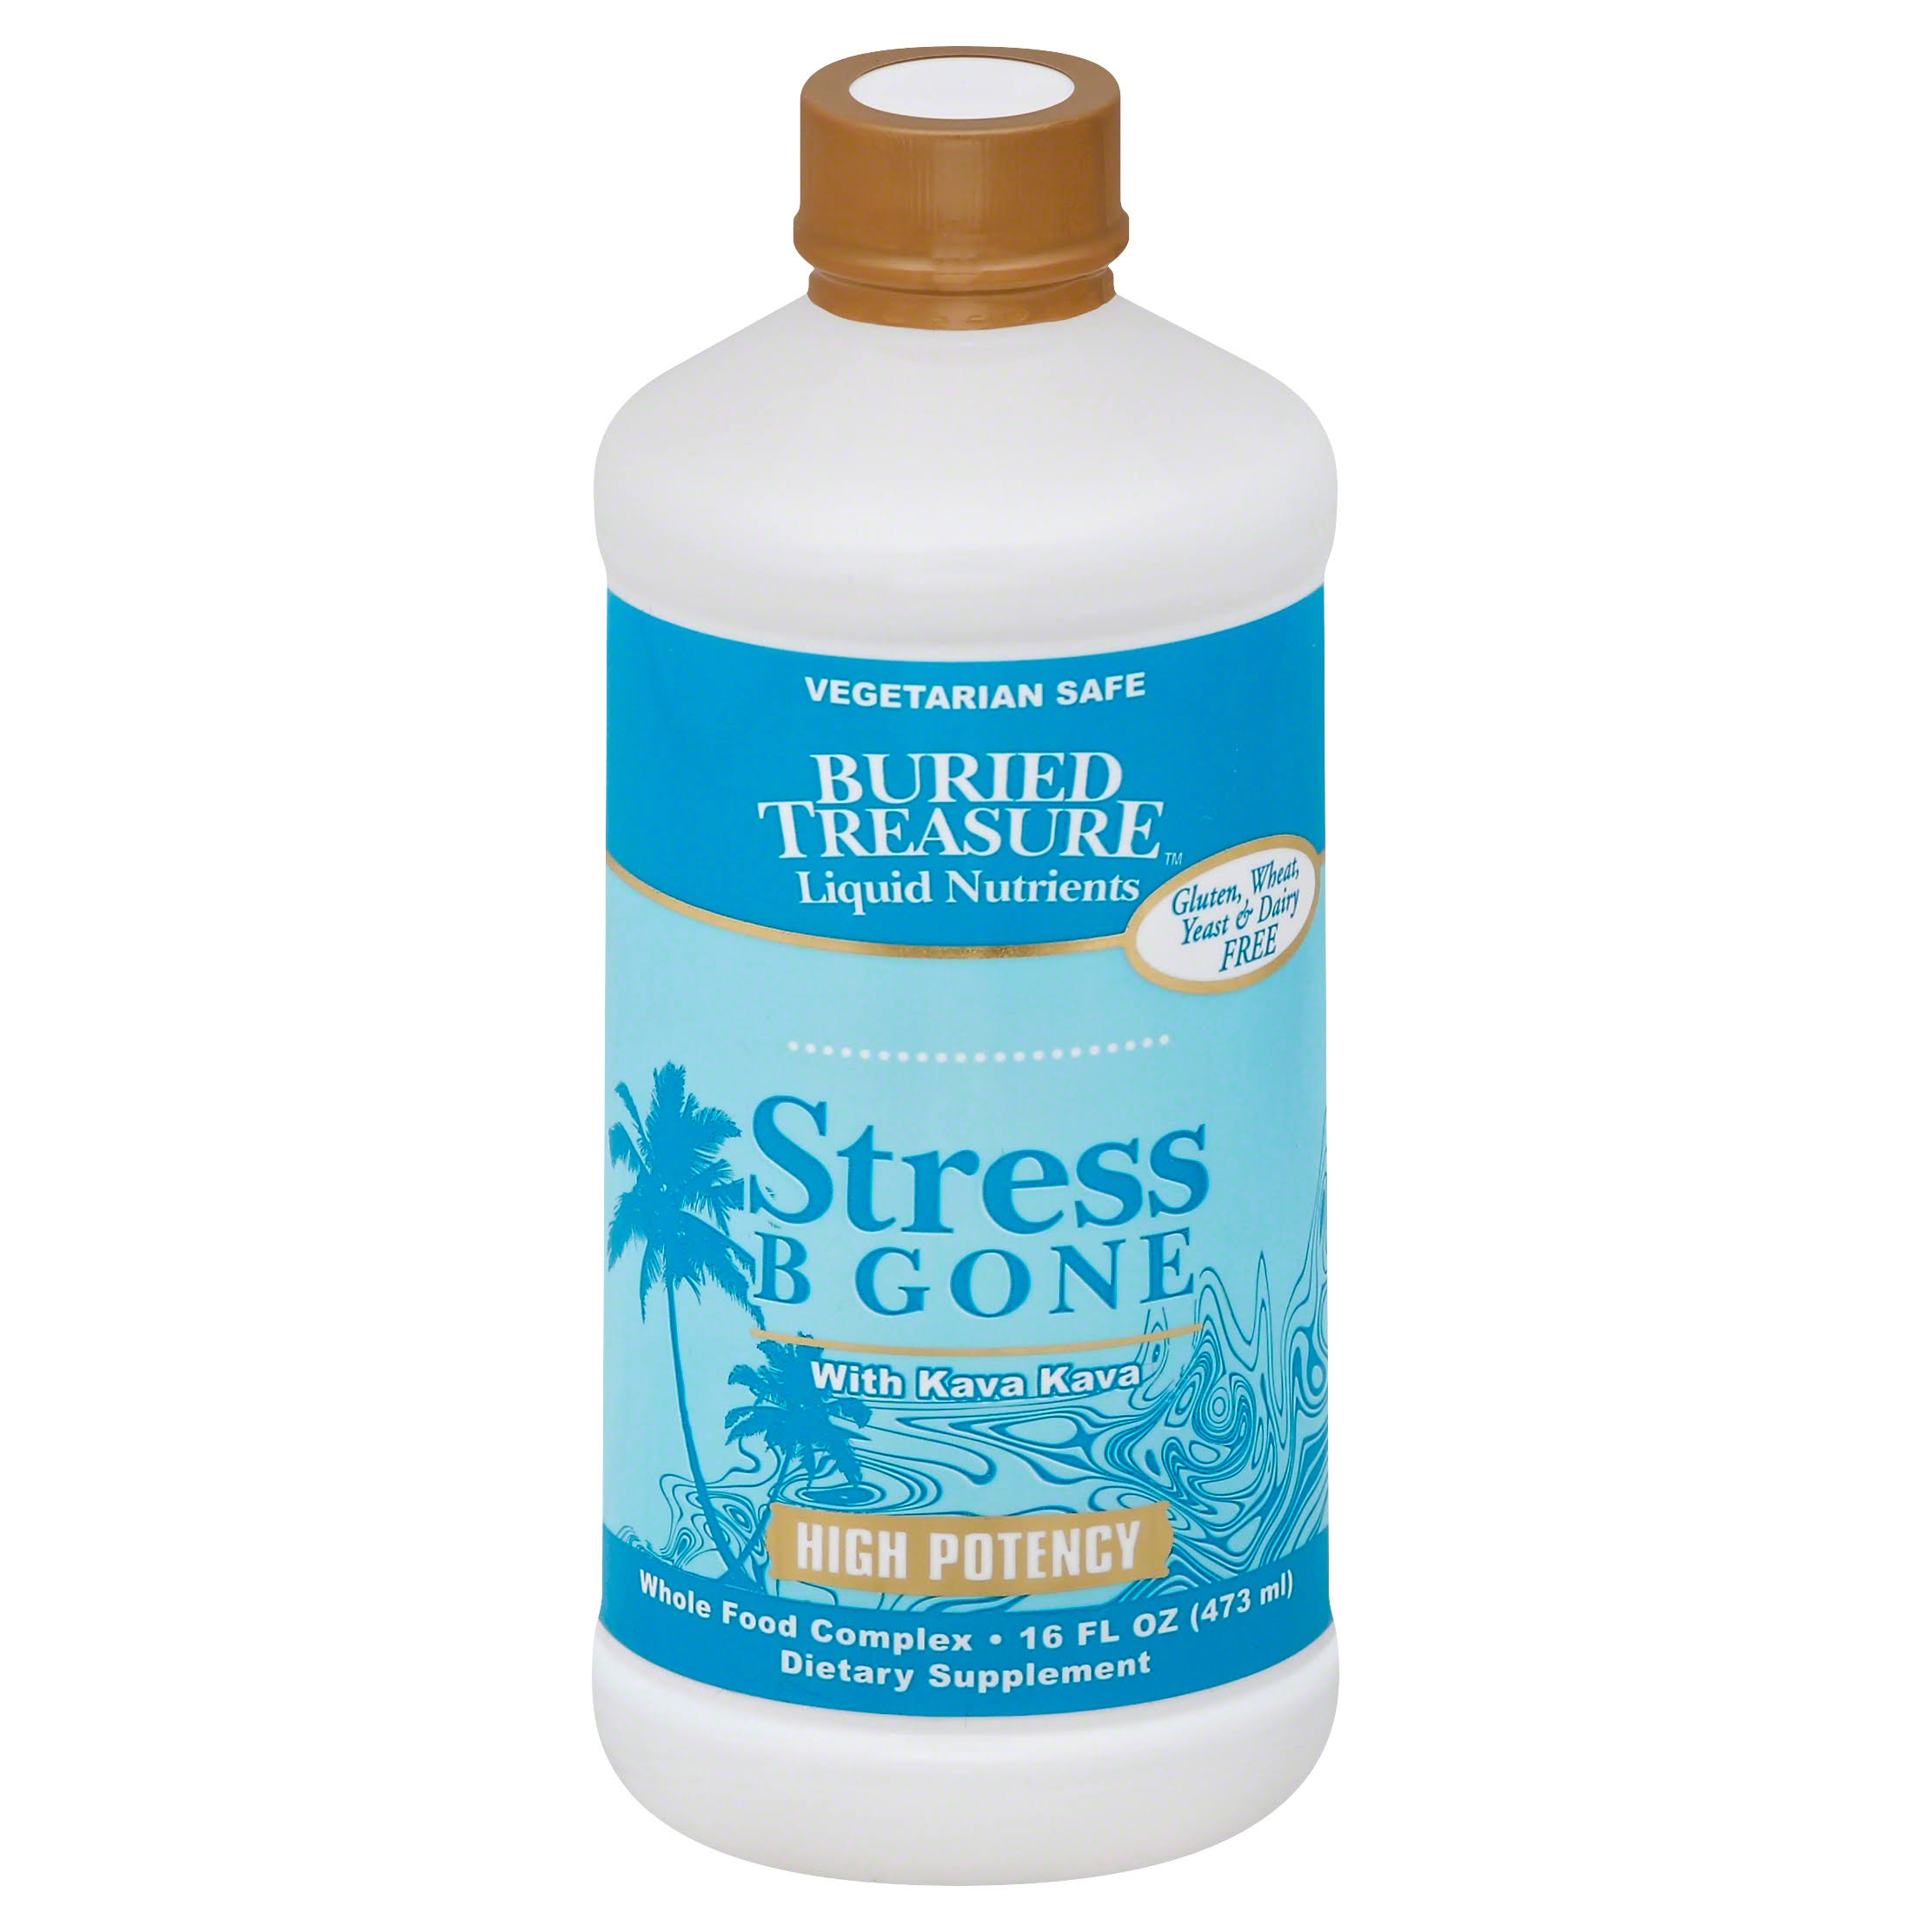 Buried Treasure Stress B Gone Liquid Supplement - 16oz